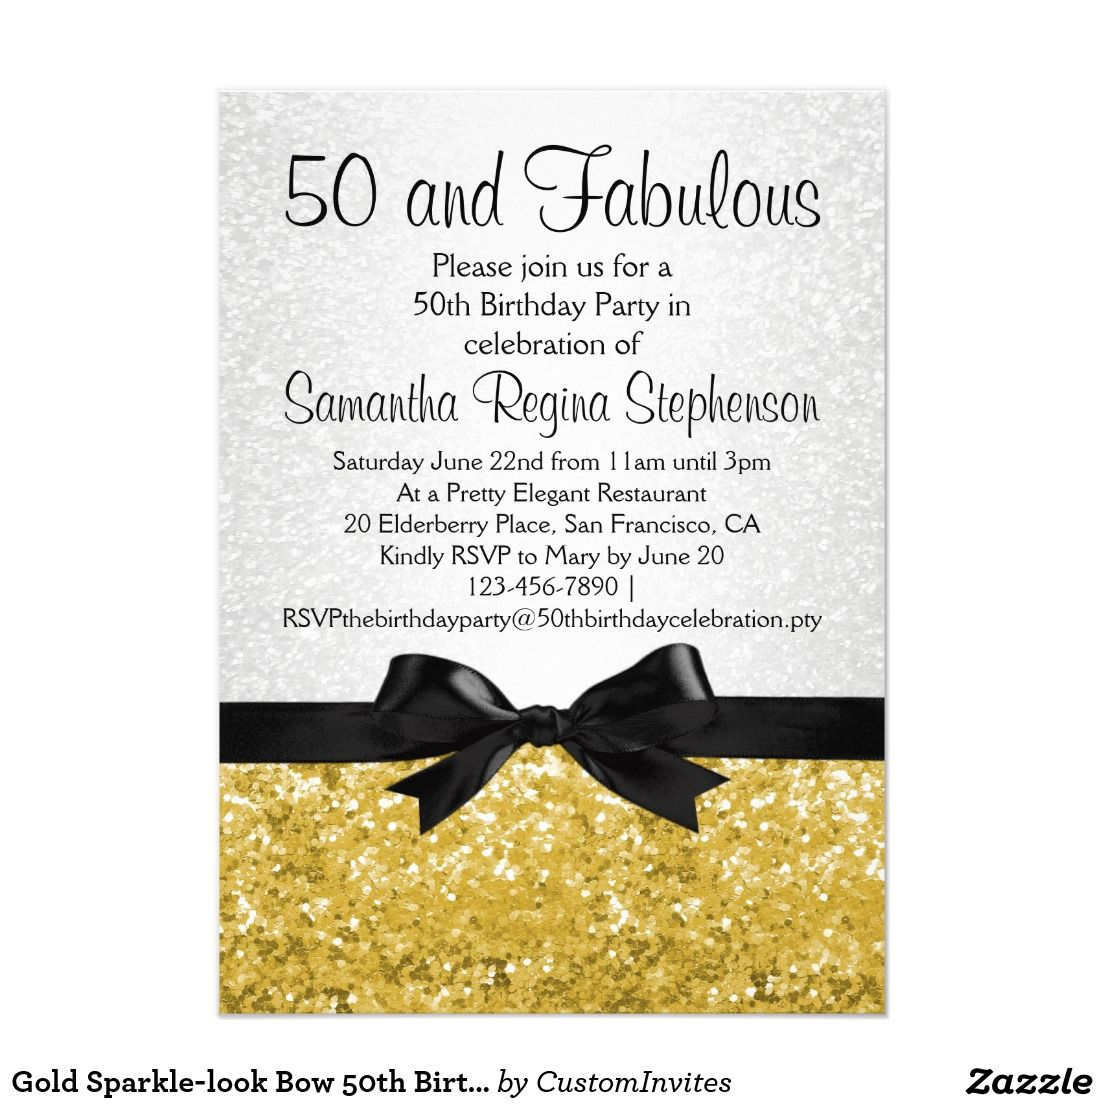 Gold Sparkle Look Bow 50th Birthday Party 4 5x6 25 Paper